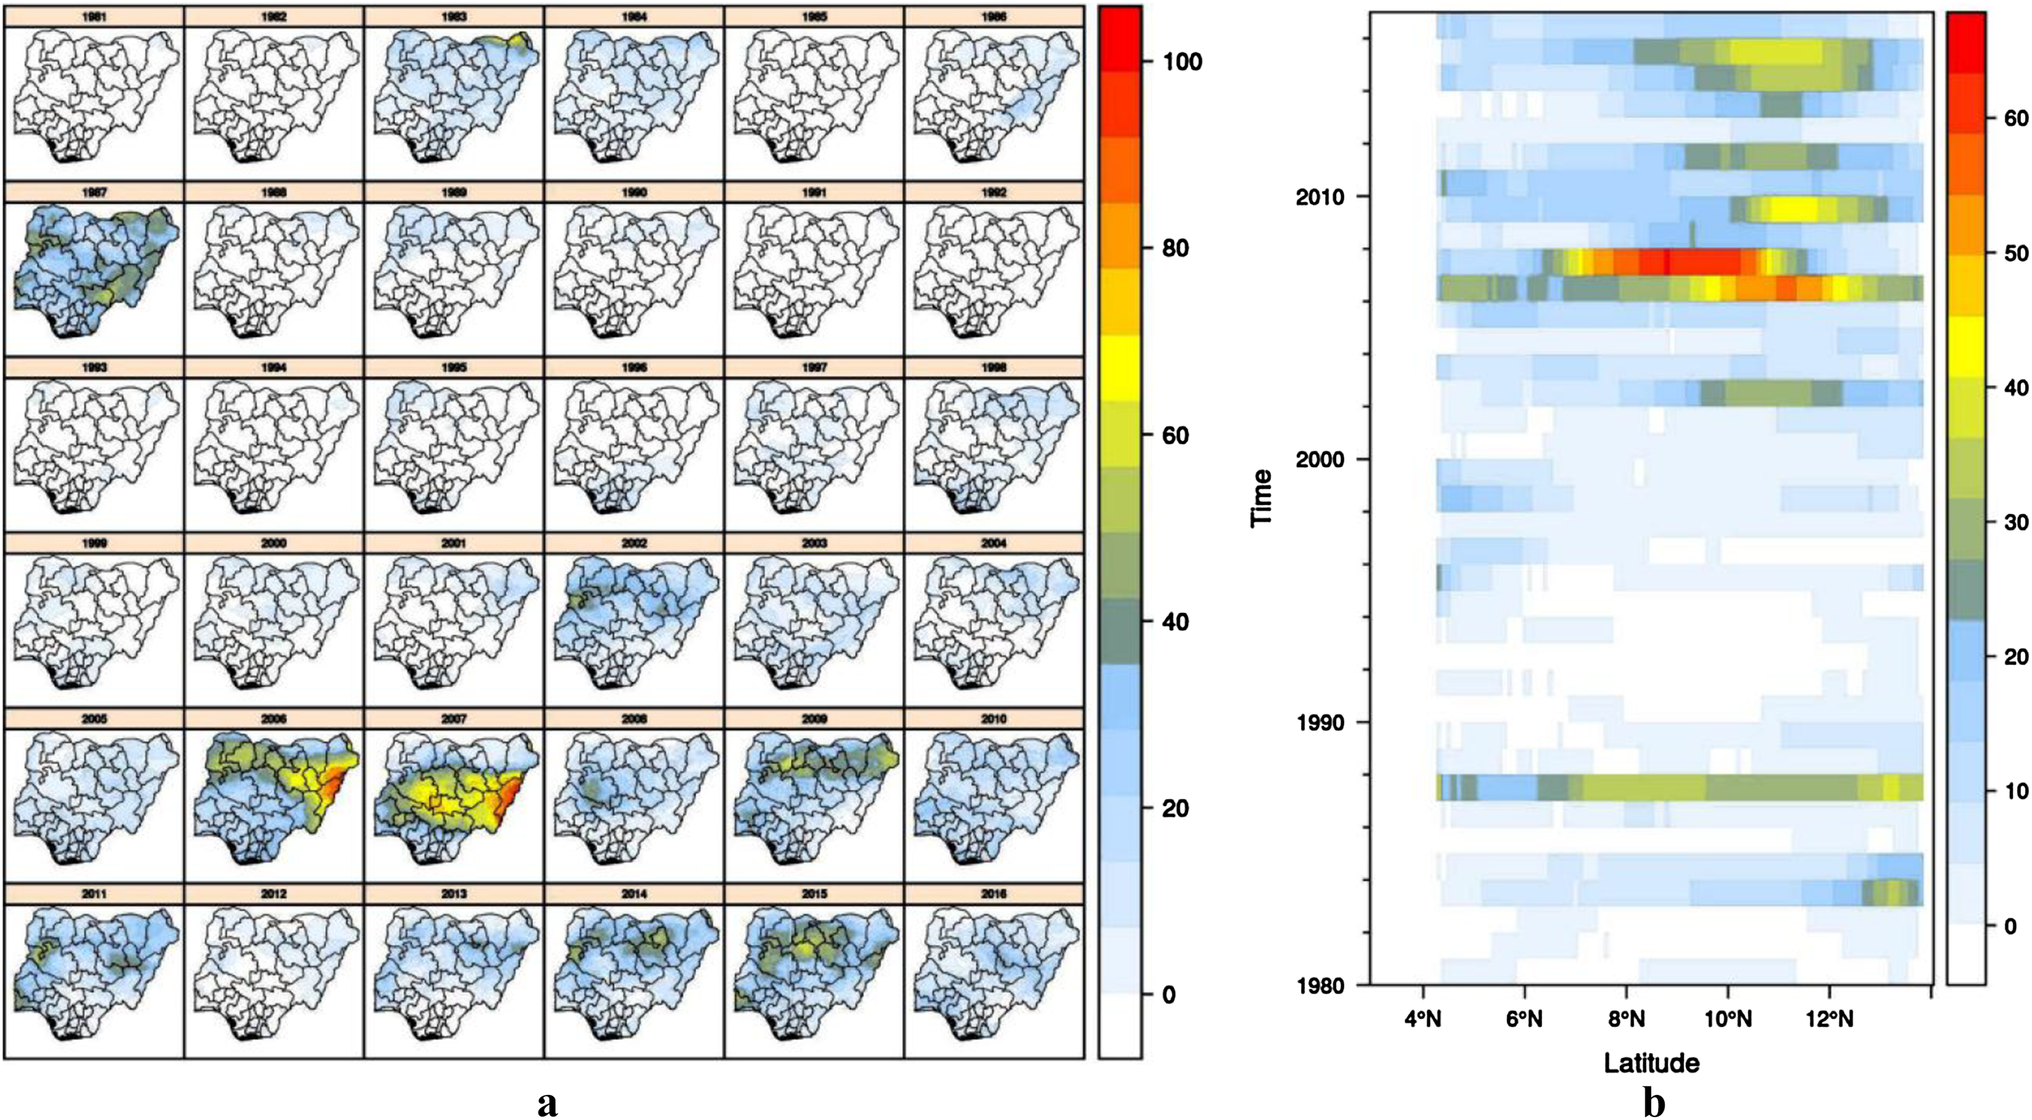 A change comparison of heat wave aspects in climatic zones of